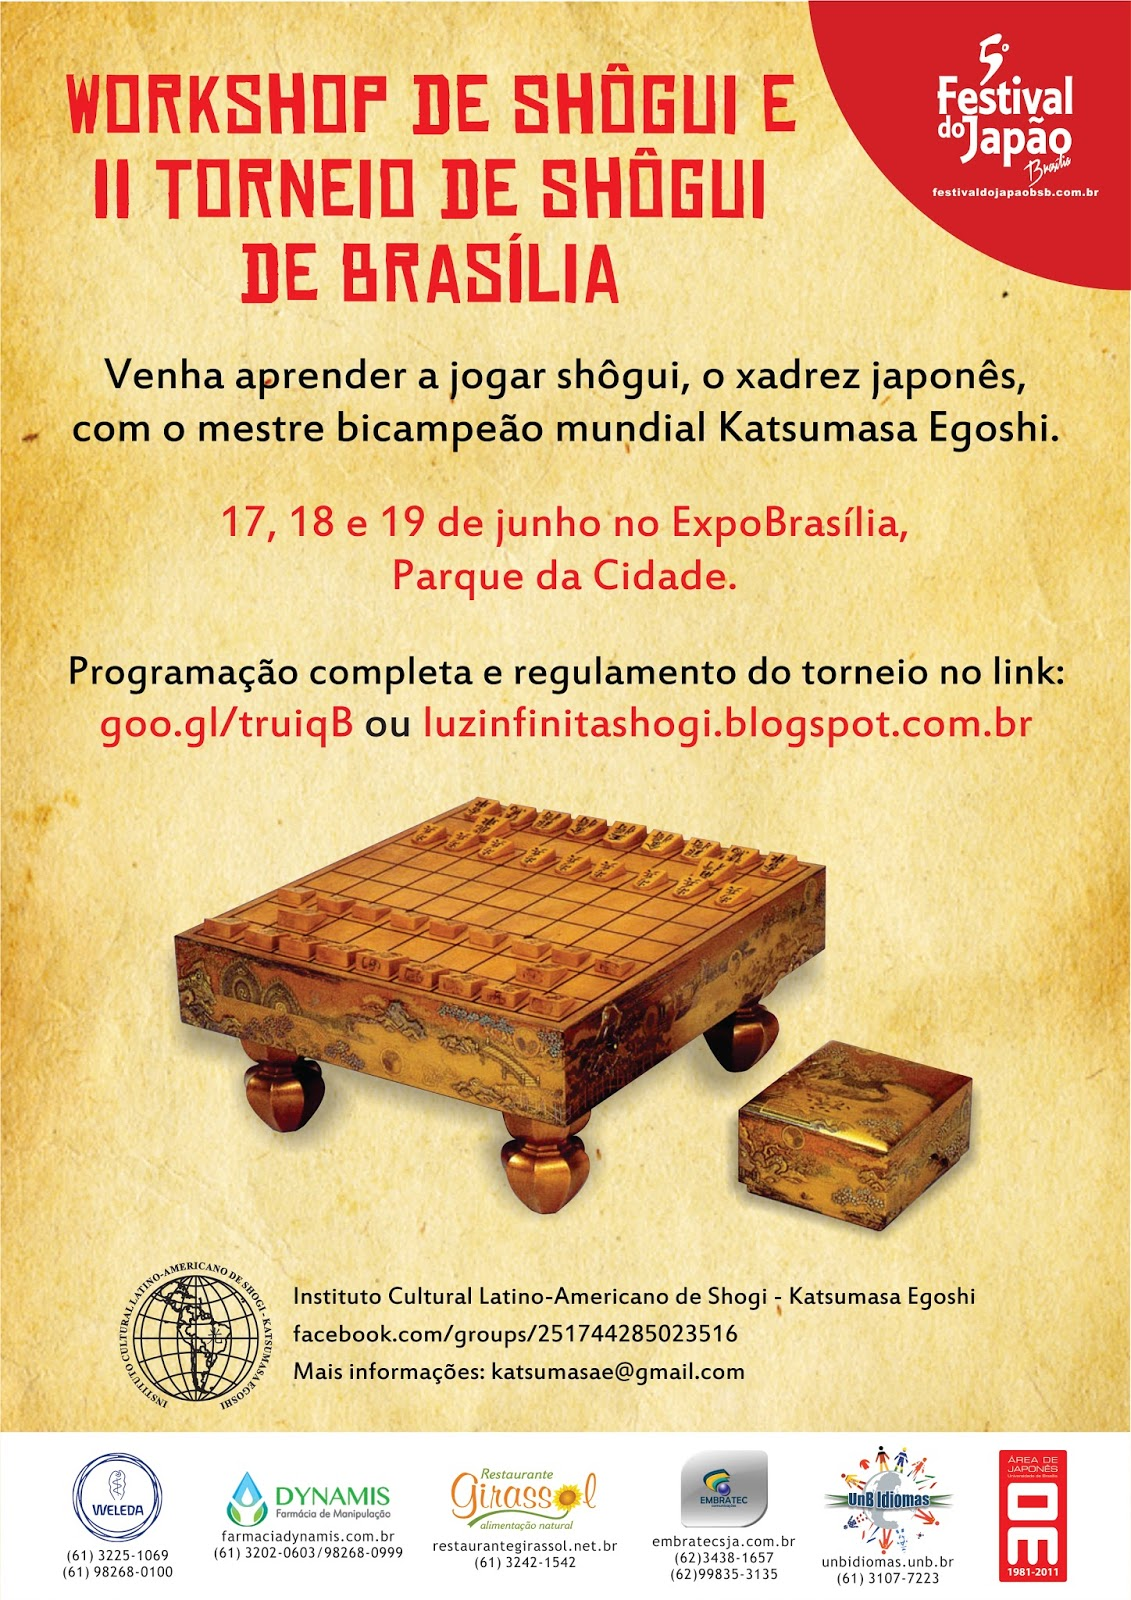 workshop e ii torneio de shogi brasilia no 5 festival do japao. Black Bedroom Furniture Sets. Home Design Ideas